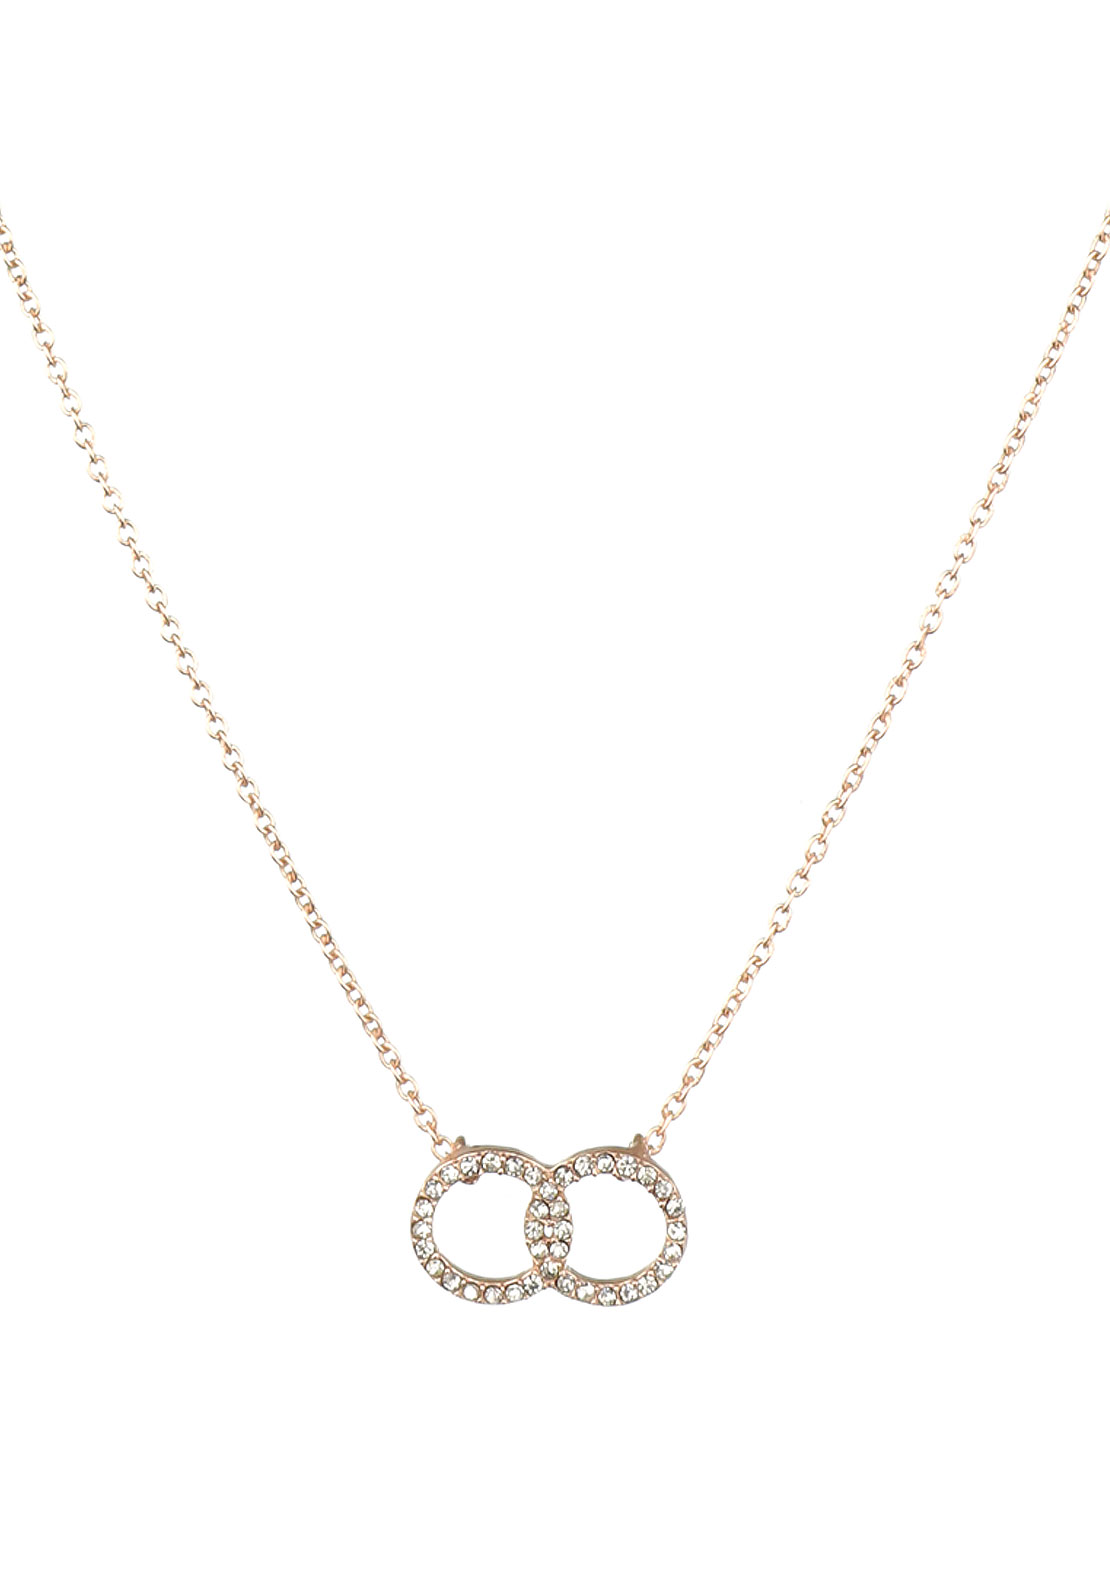 Pilgrim Crystal Interlocked Ring Necklace, Rose Gold Plated